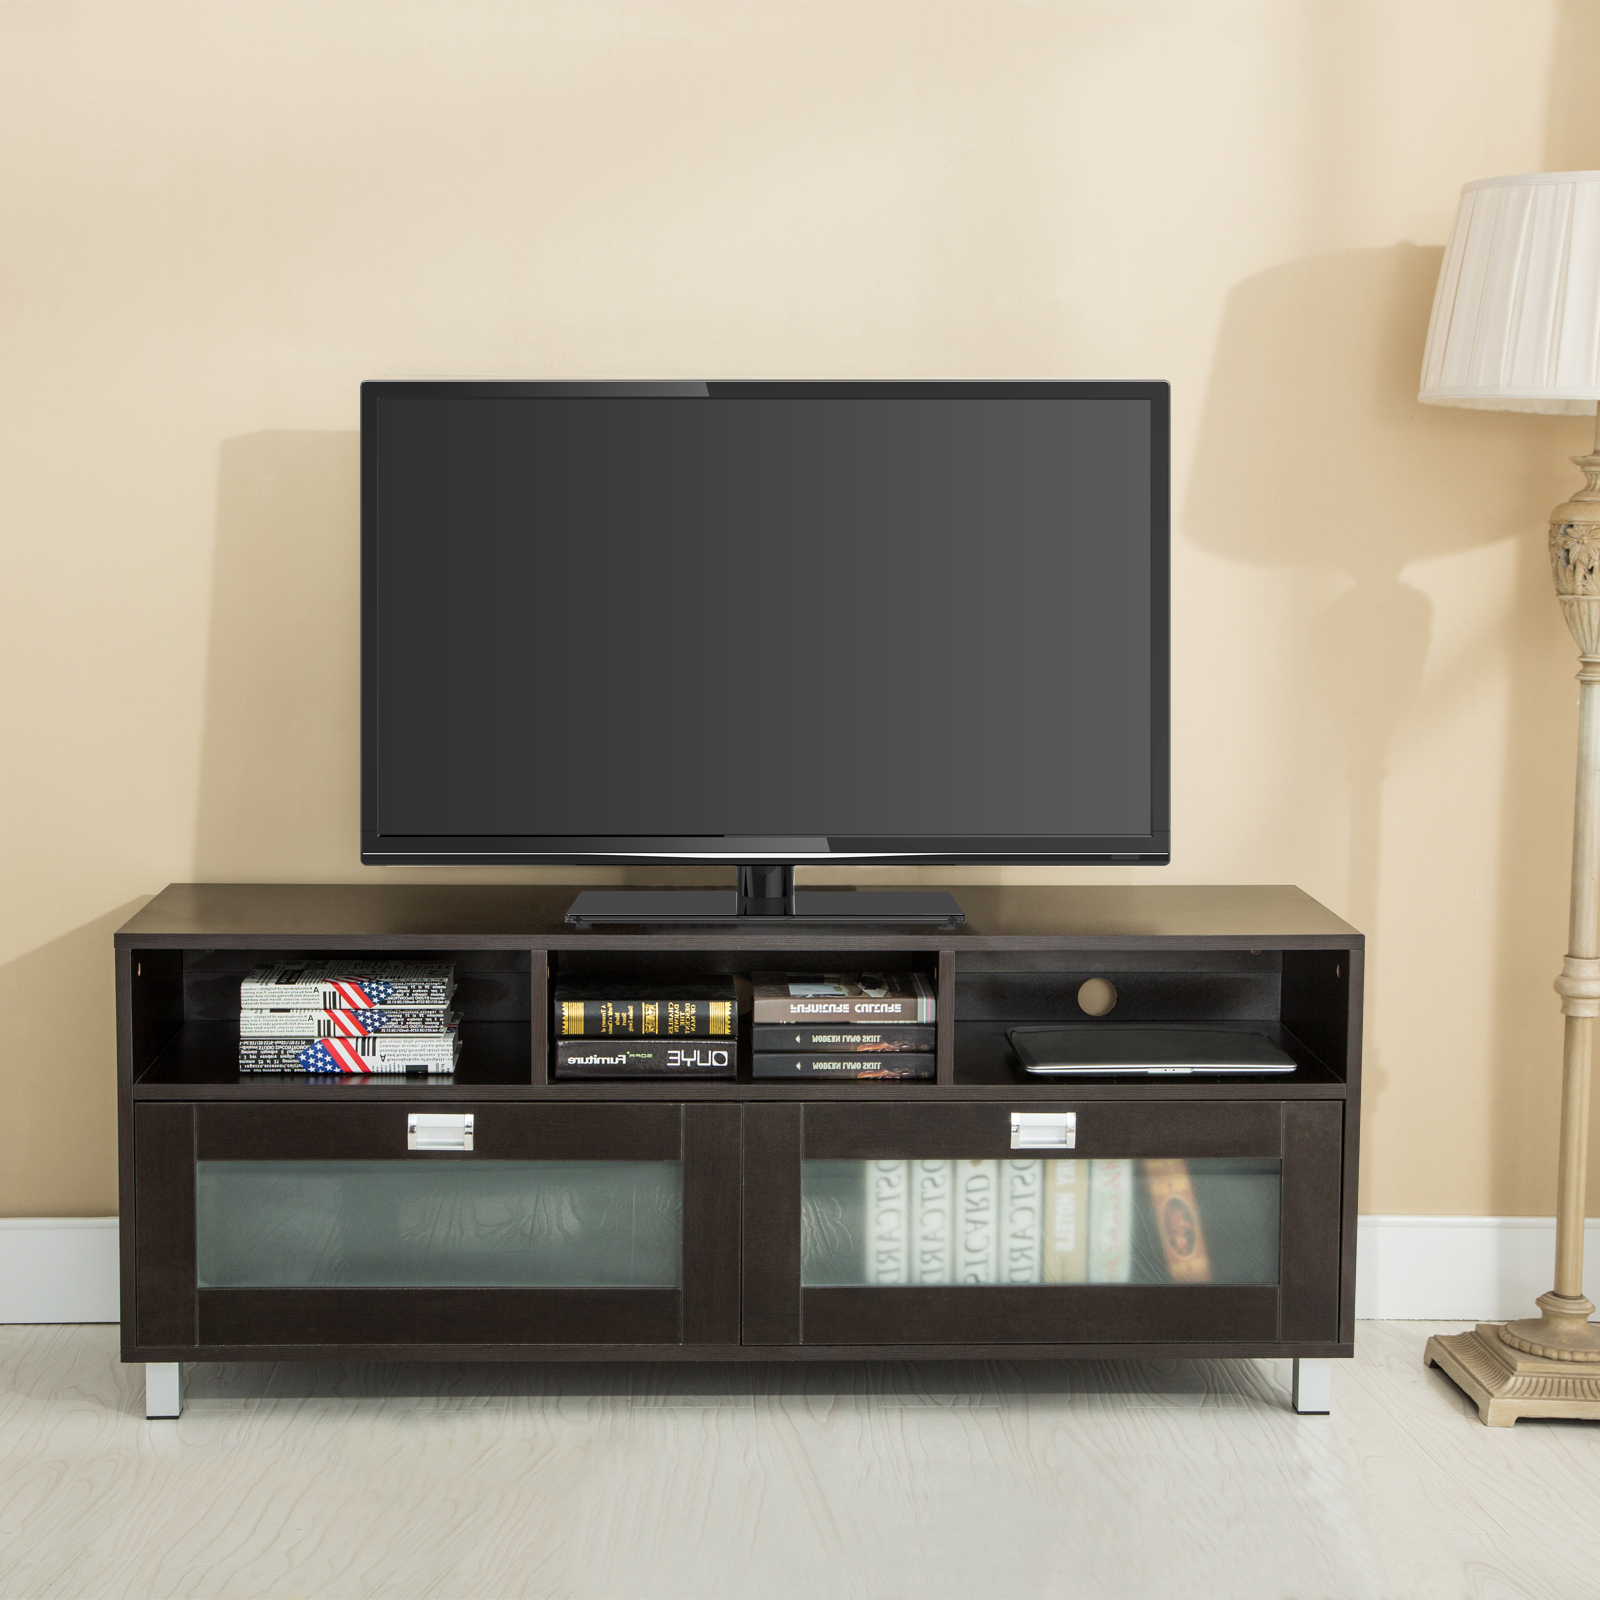 Tv Stand Cabinet (View 13 of 20)